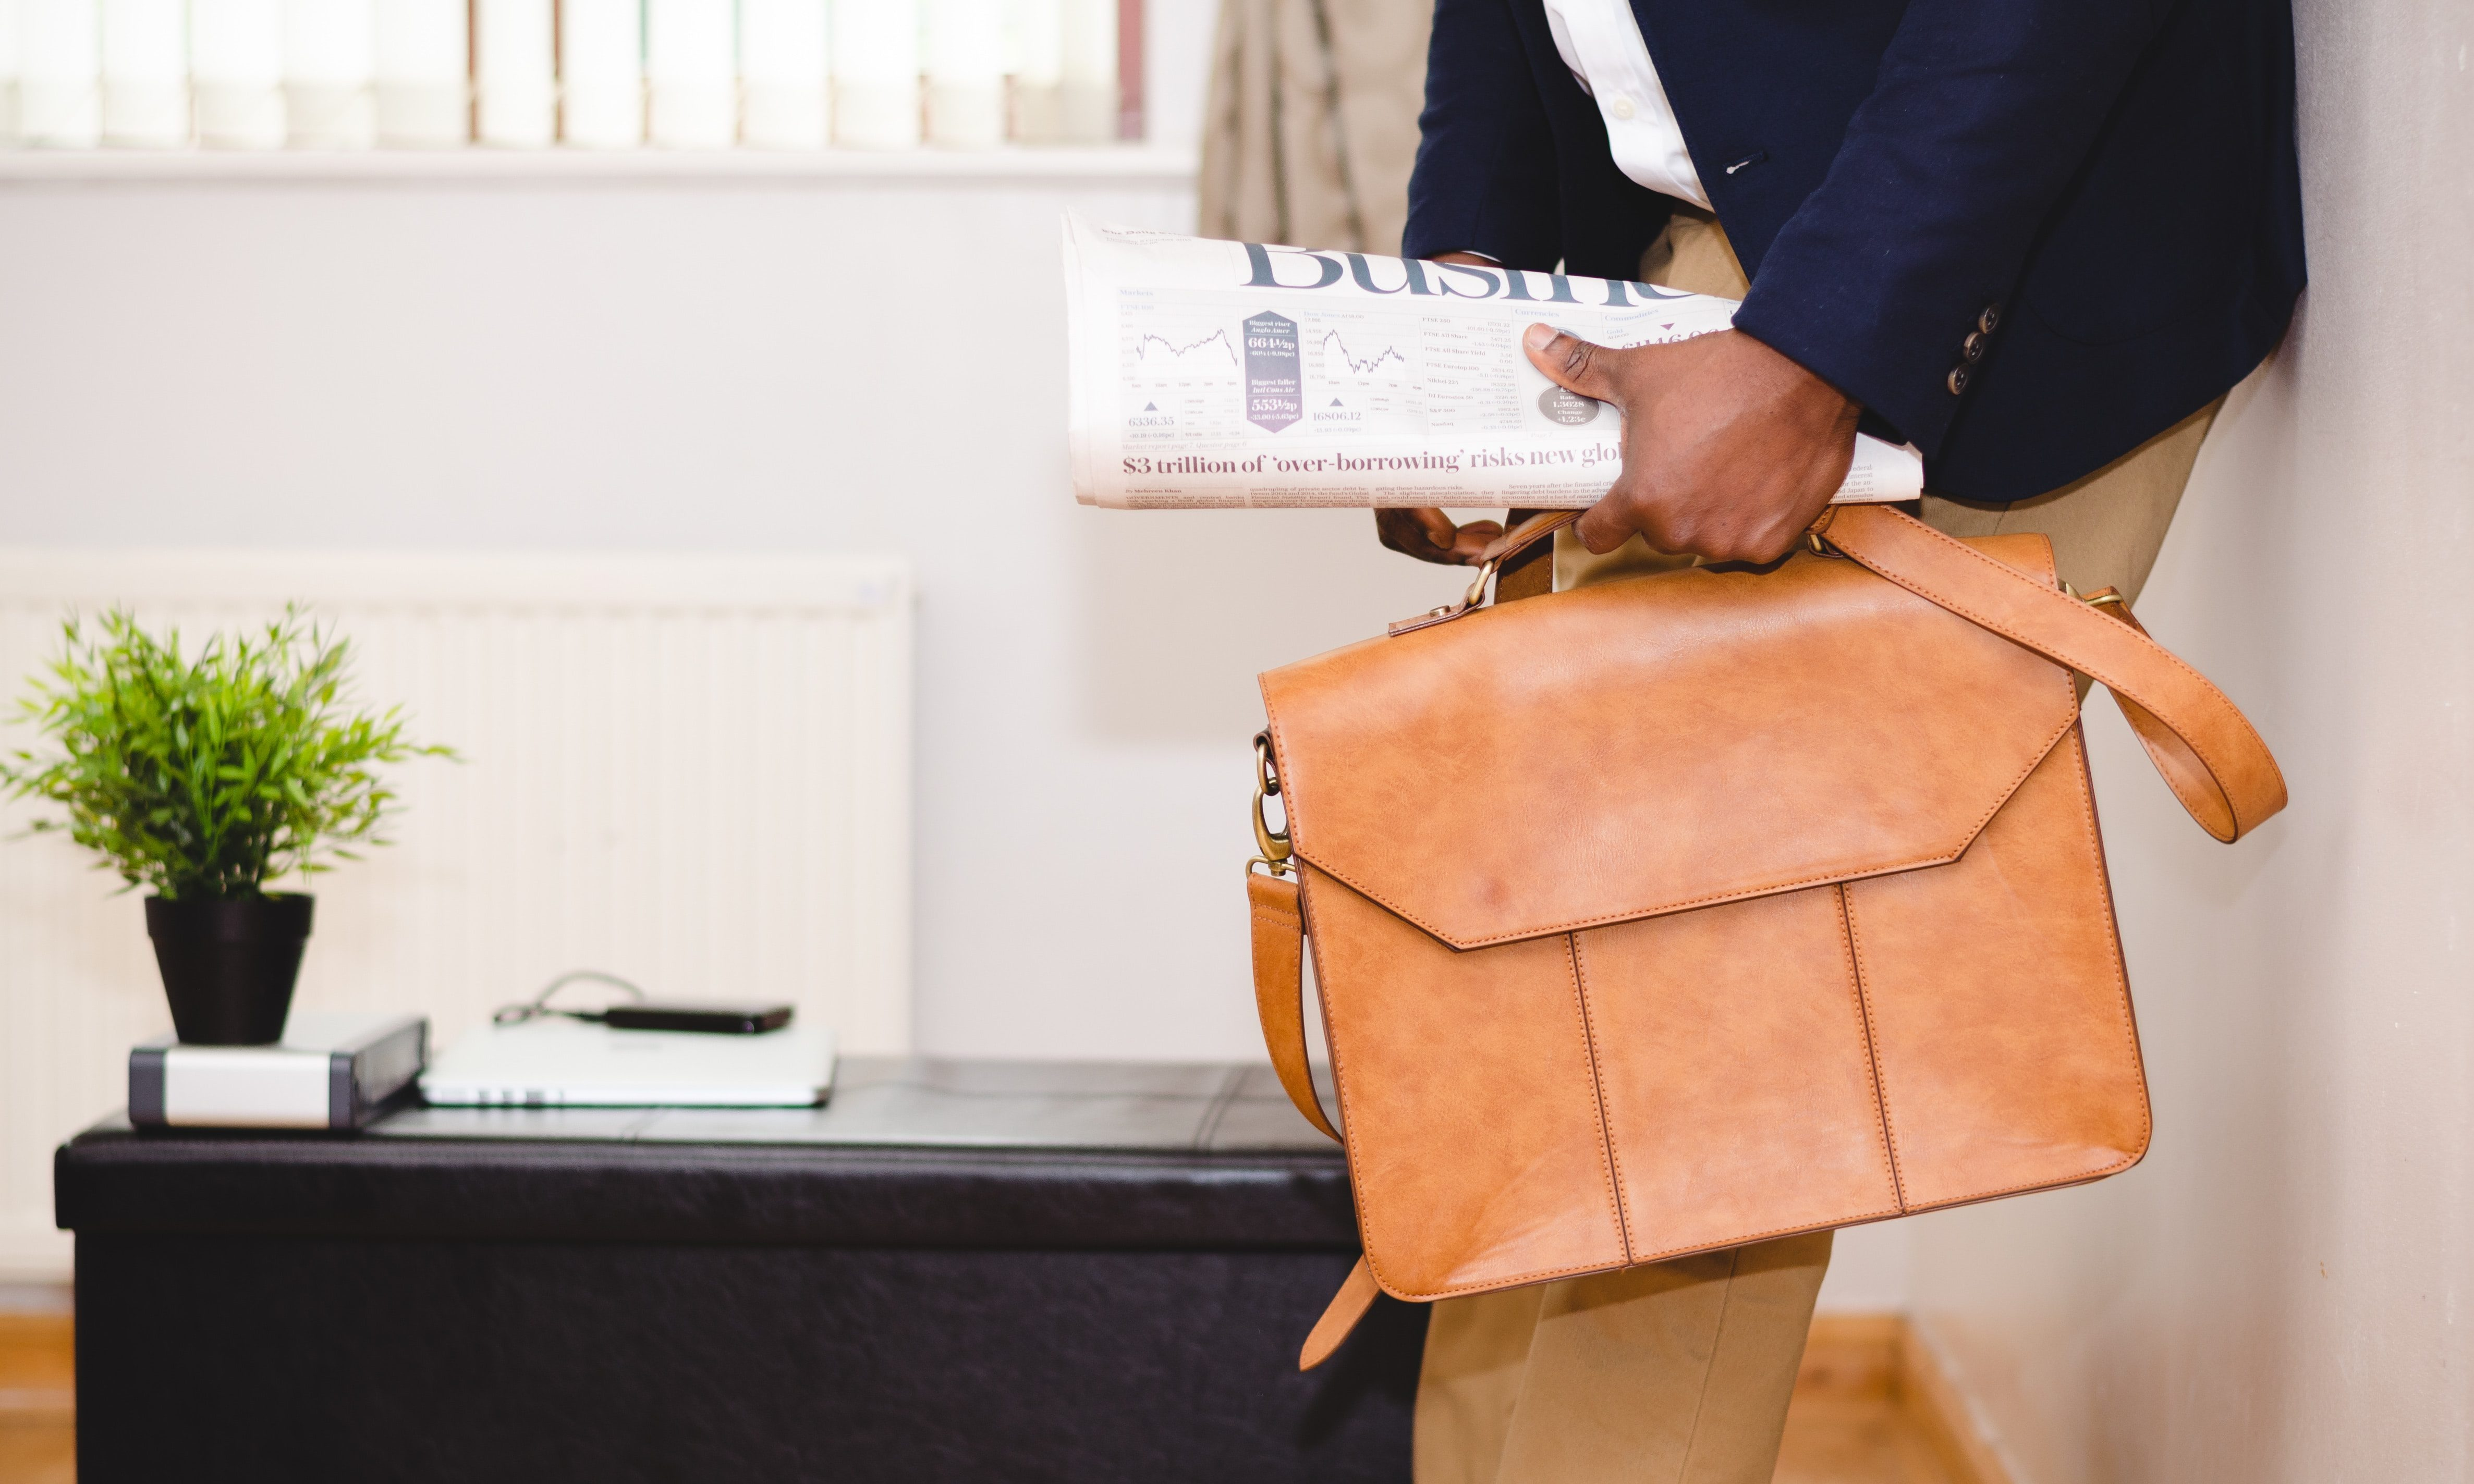 Man holding briefcase and newspaper